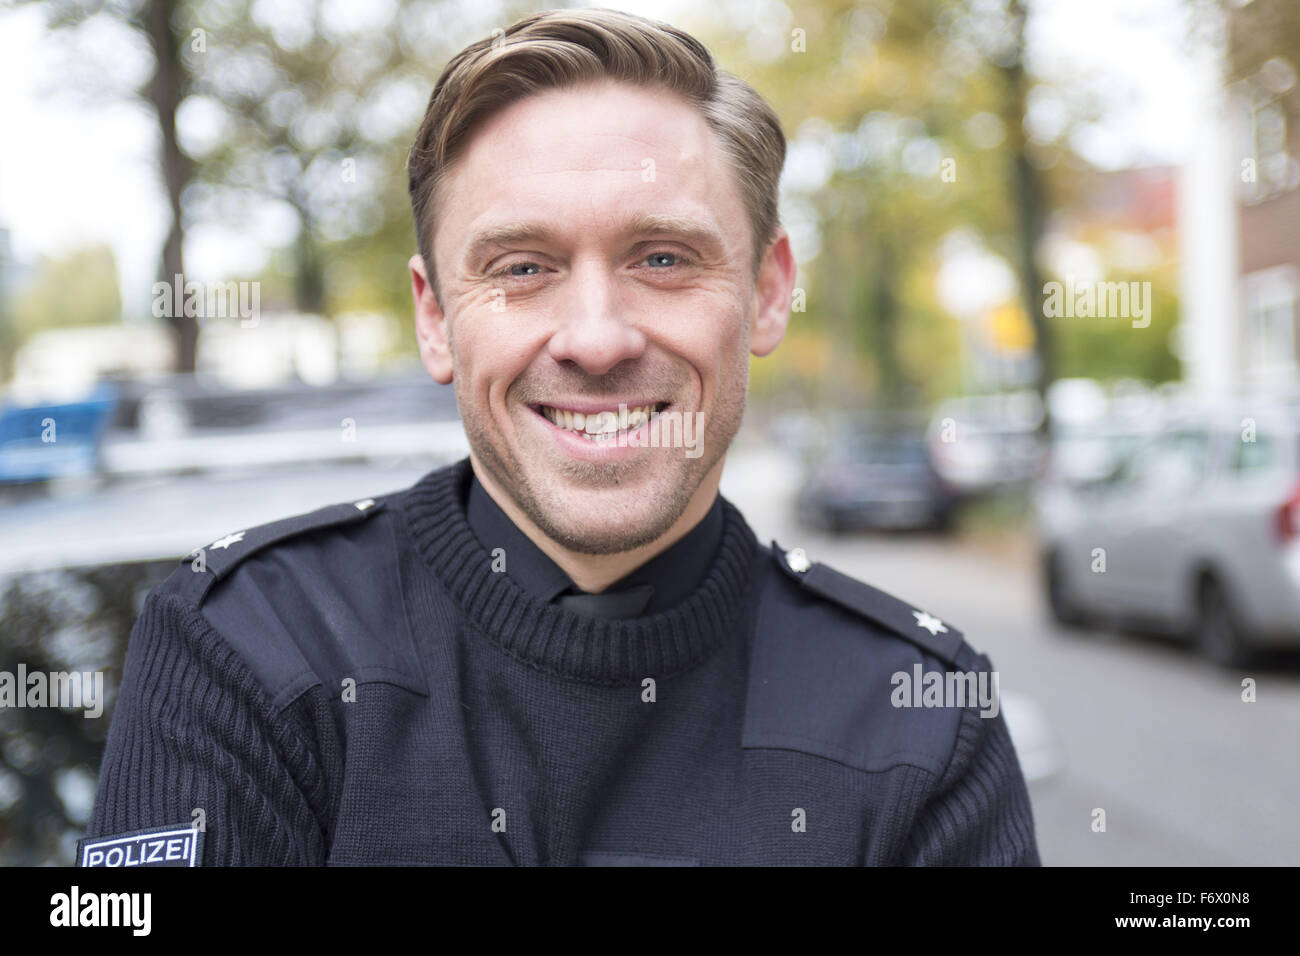 There is a new cop in the ARD-Series Grossstadtrevier